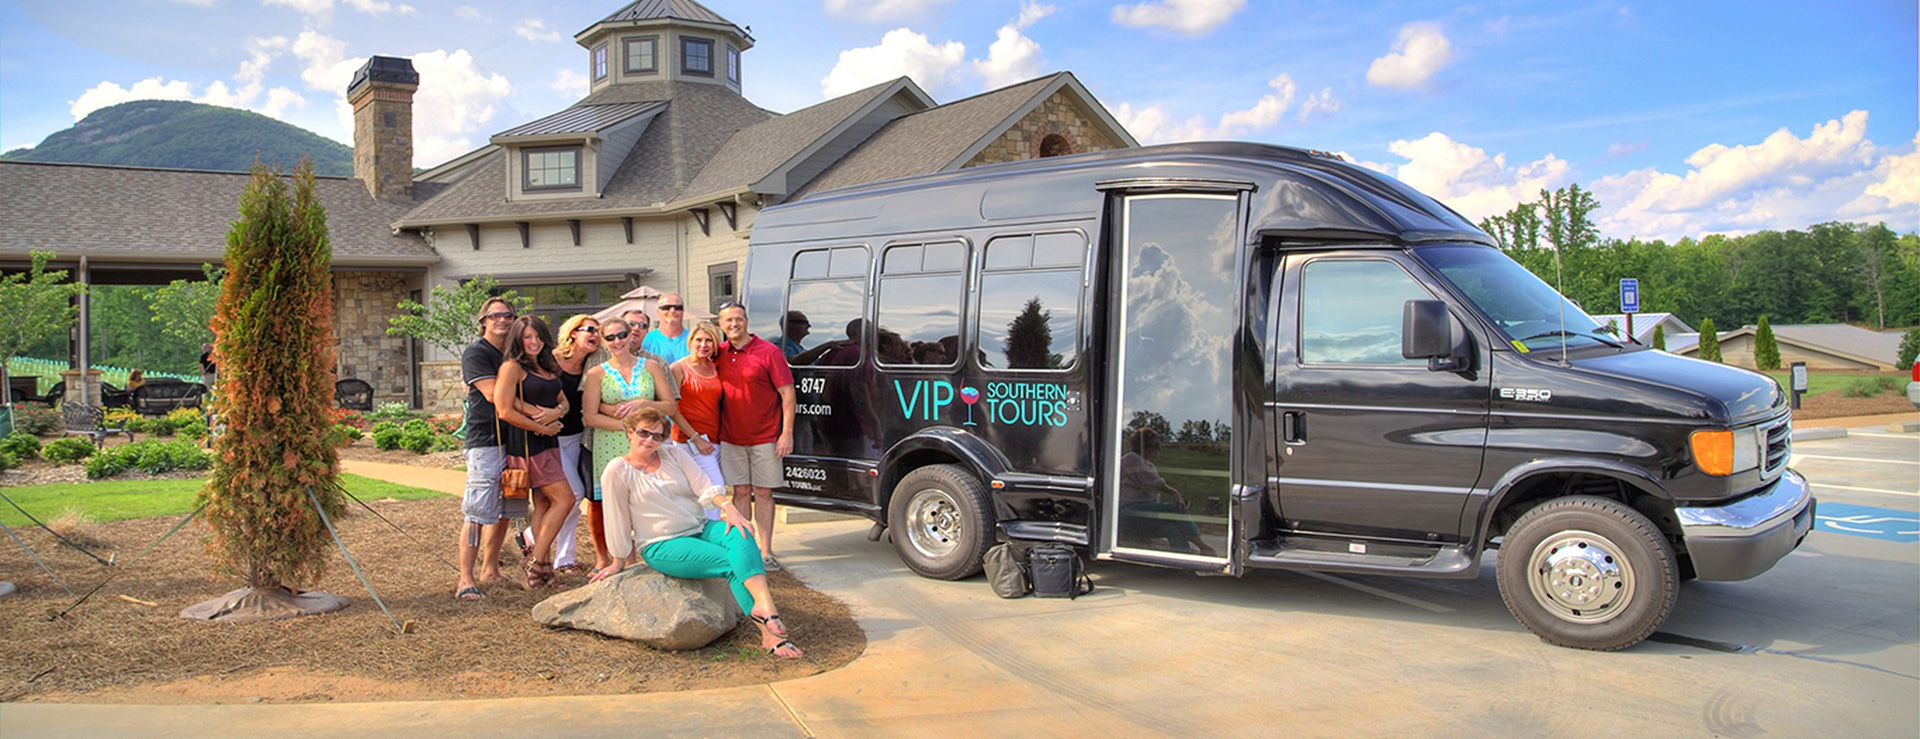 North Georgia wine tour specialist